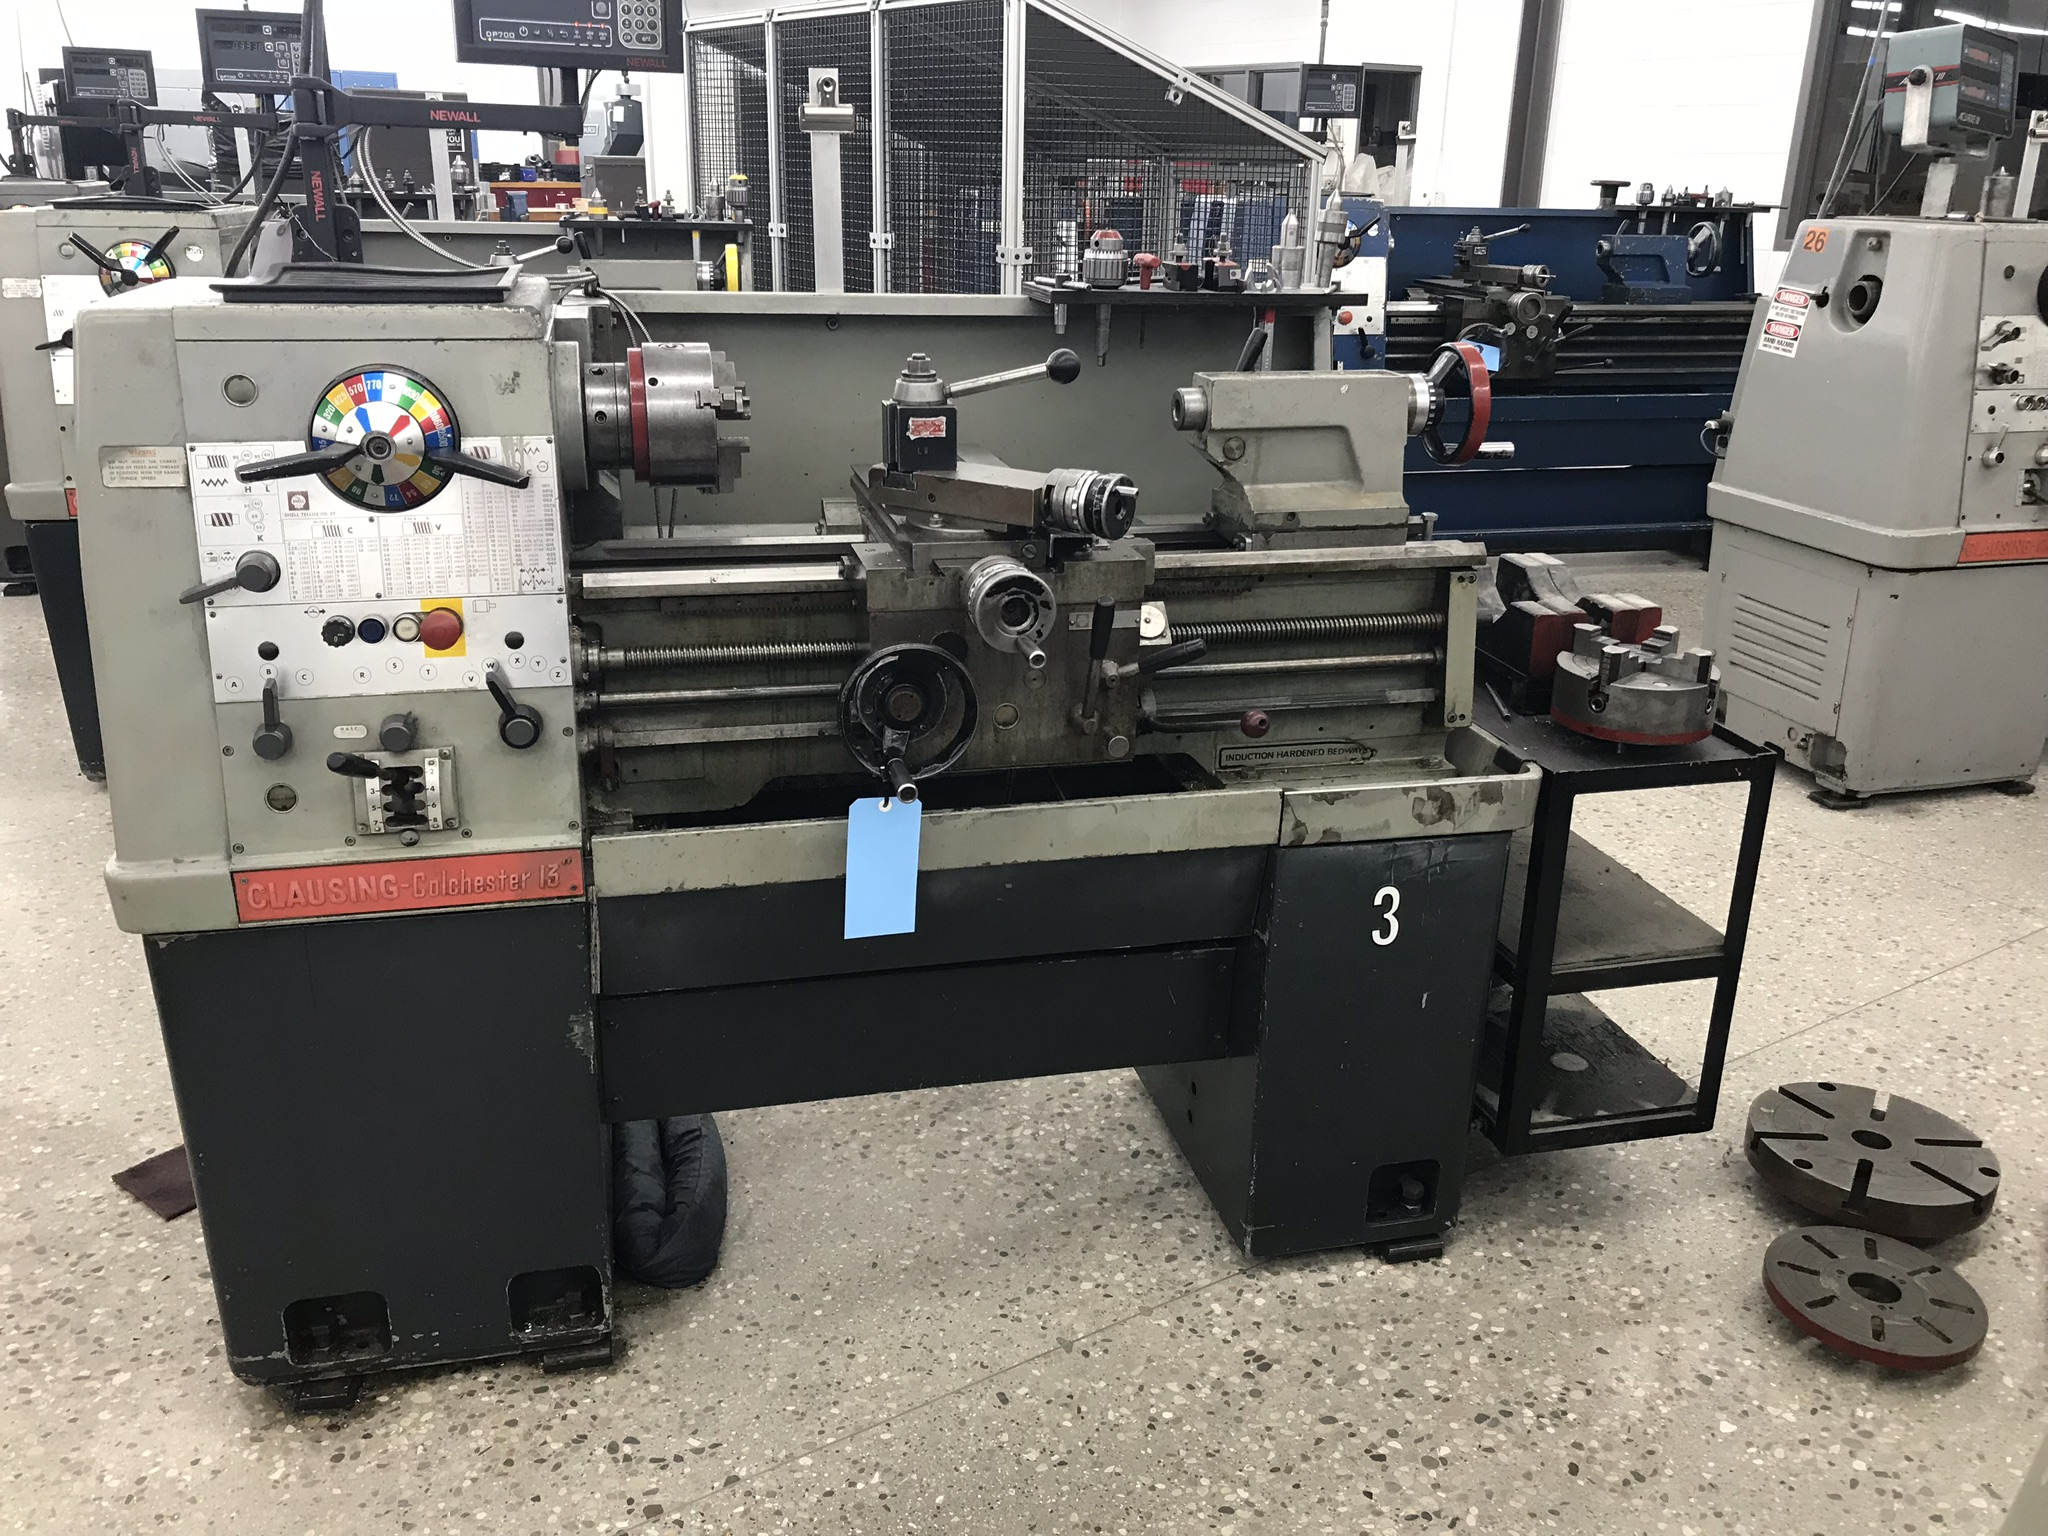 "Clausing Colchester 13"" x 25"" Toolroom Lathe 6"" 3 jaw, 8"" 4 jaw, Aloris Tool Post, DRO, Face Plates"